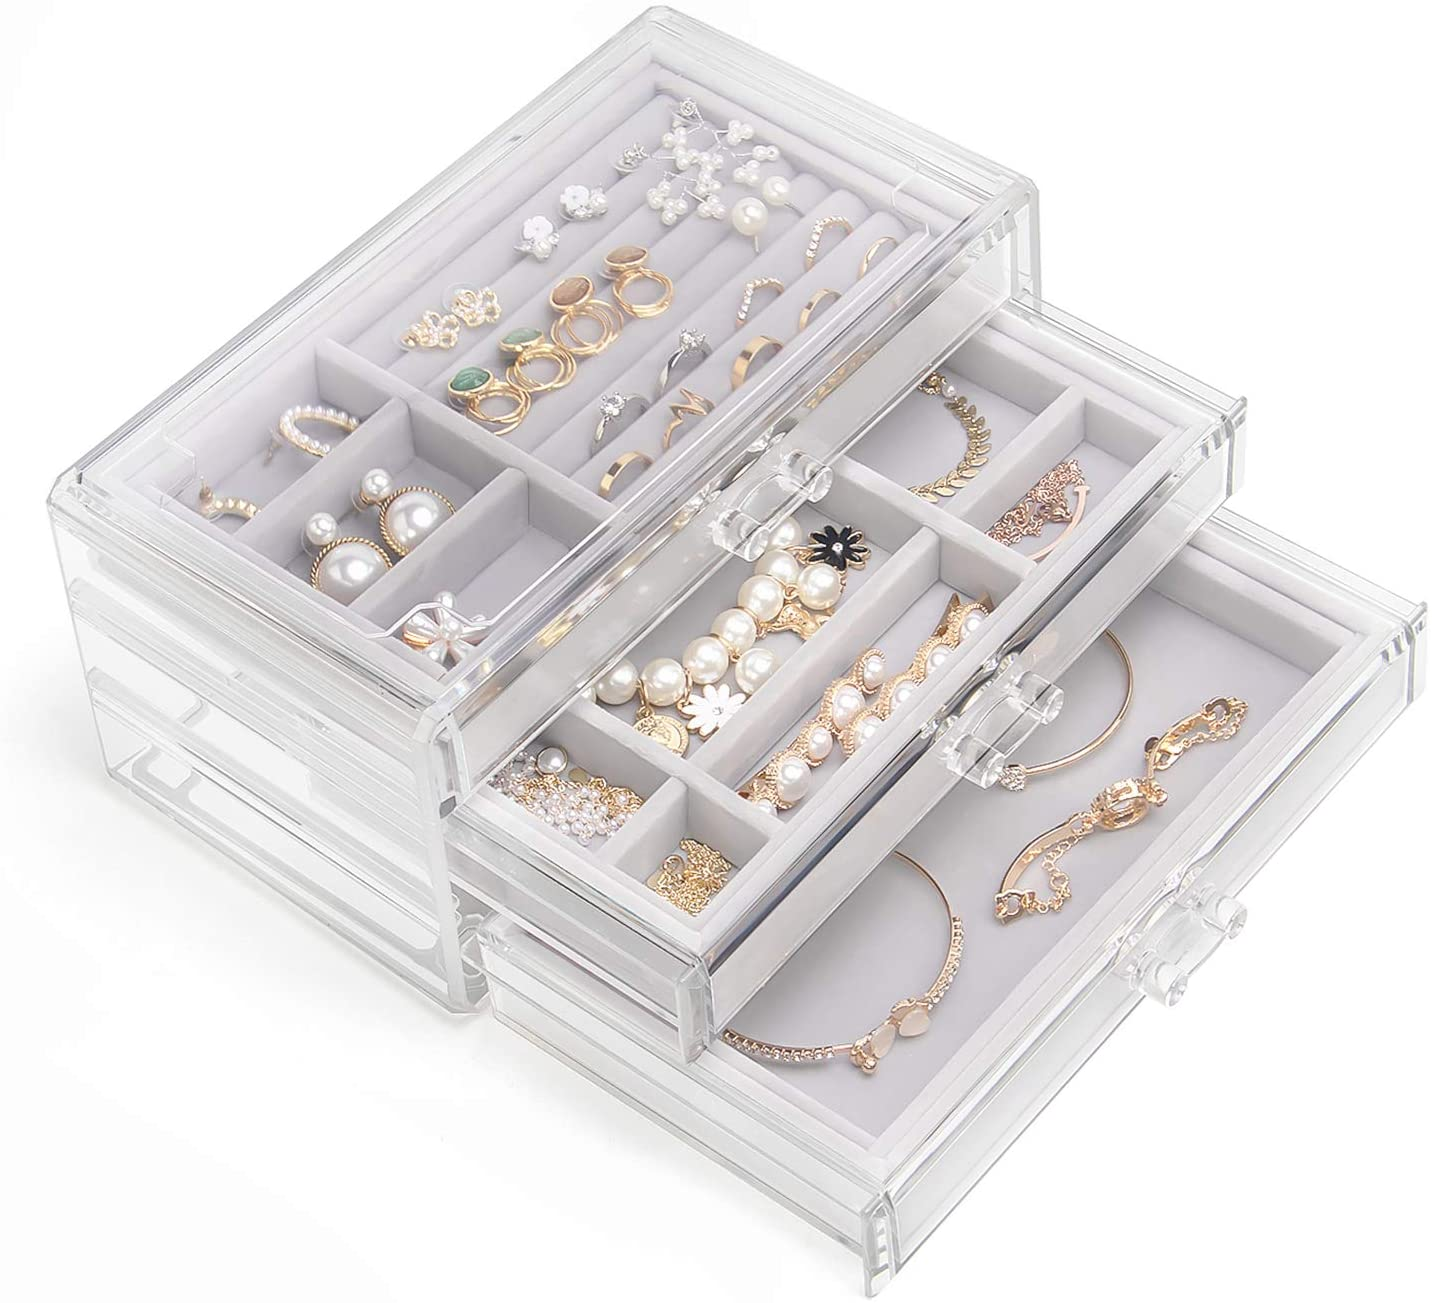 YestBuy Jewelry Box, Velvet Jewelry Organizer for Women, Acrylic Jewelry case, with3 Tier Travel Storage Case for Earring Bangle Bracelet Necklace and Rings Storage, Gray